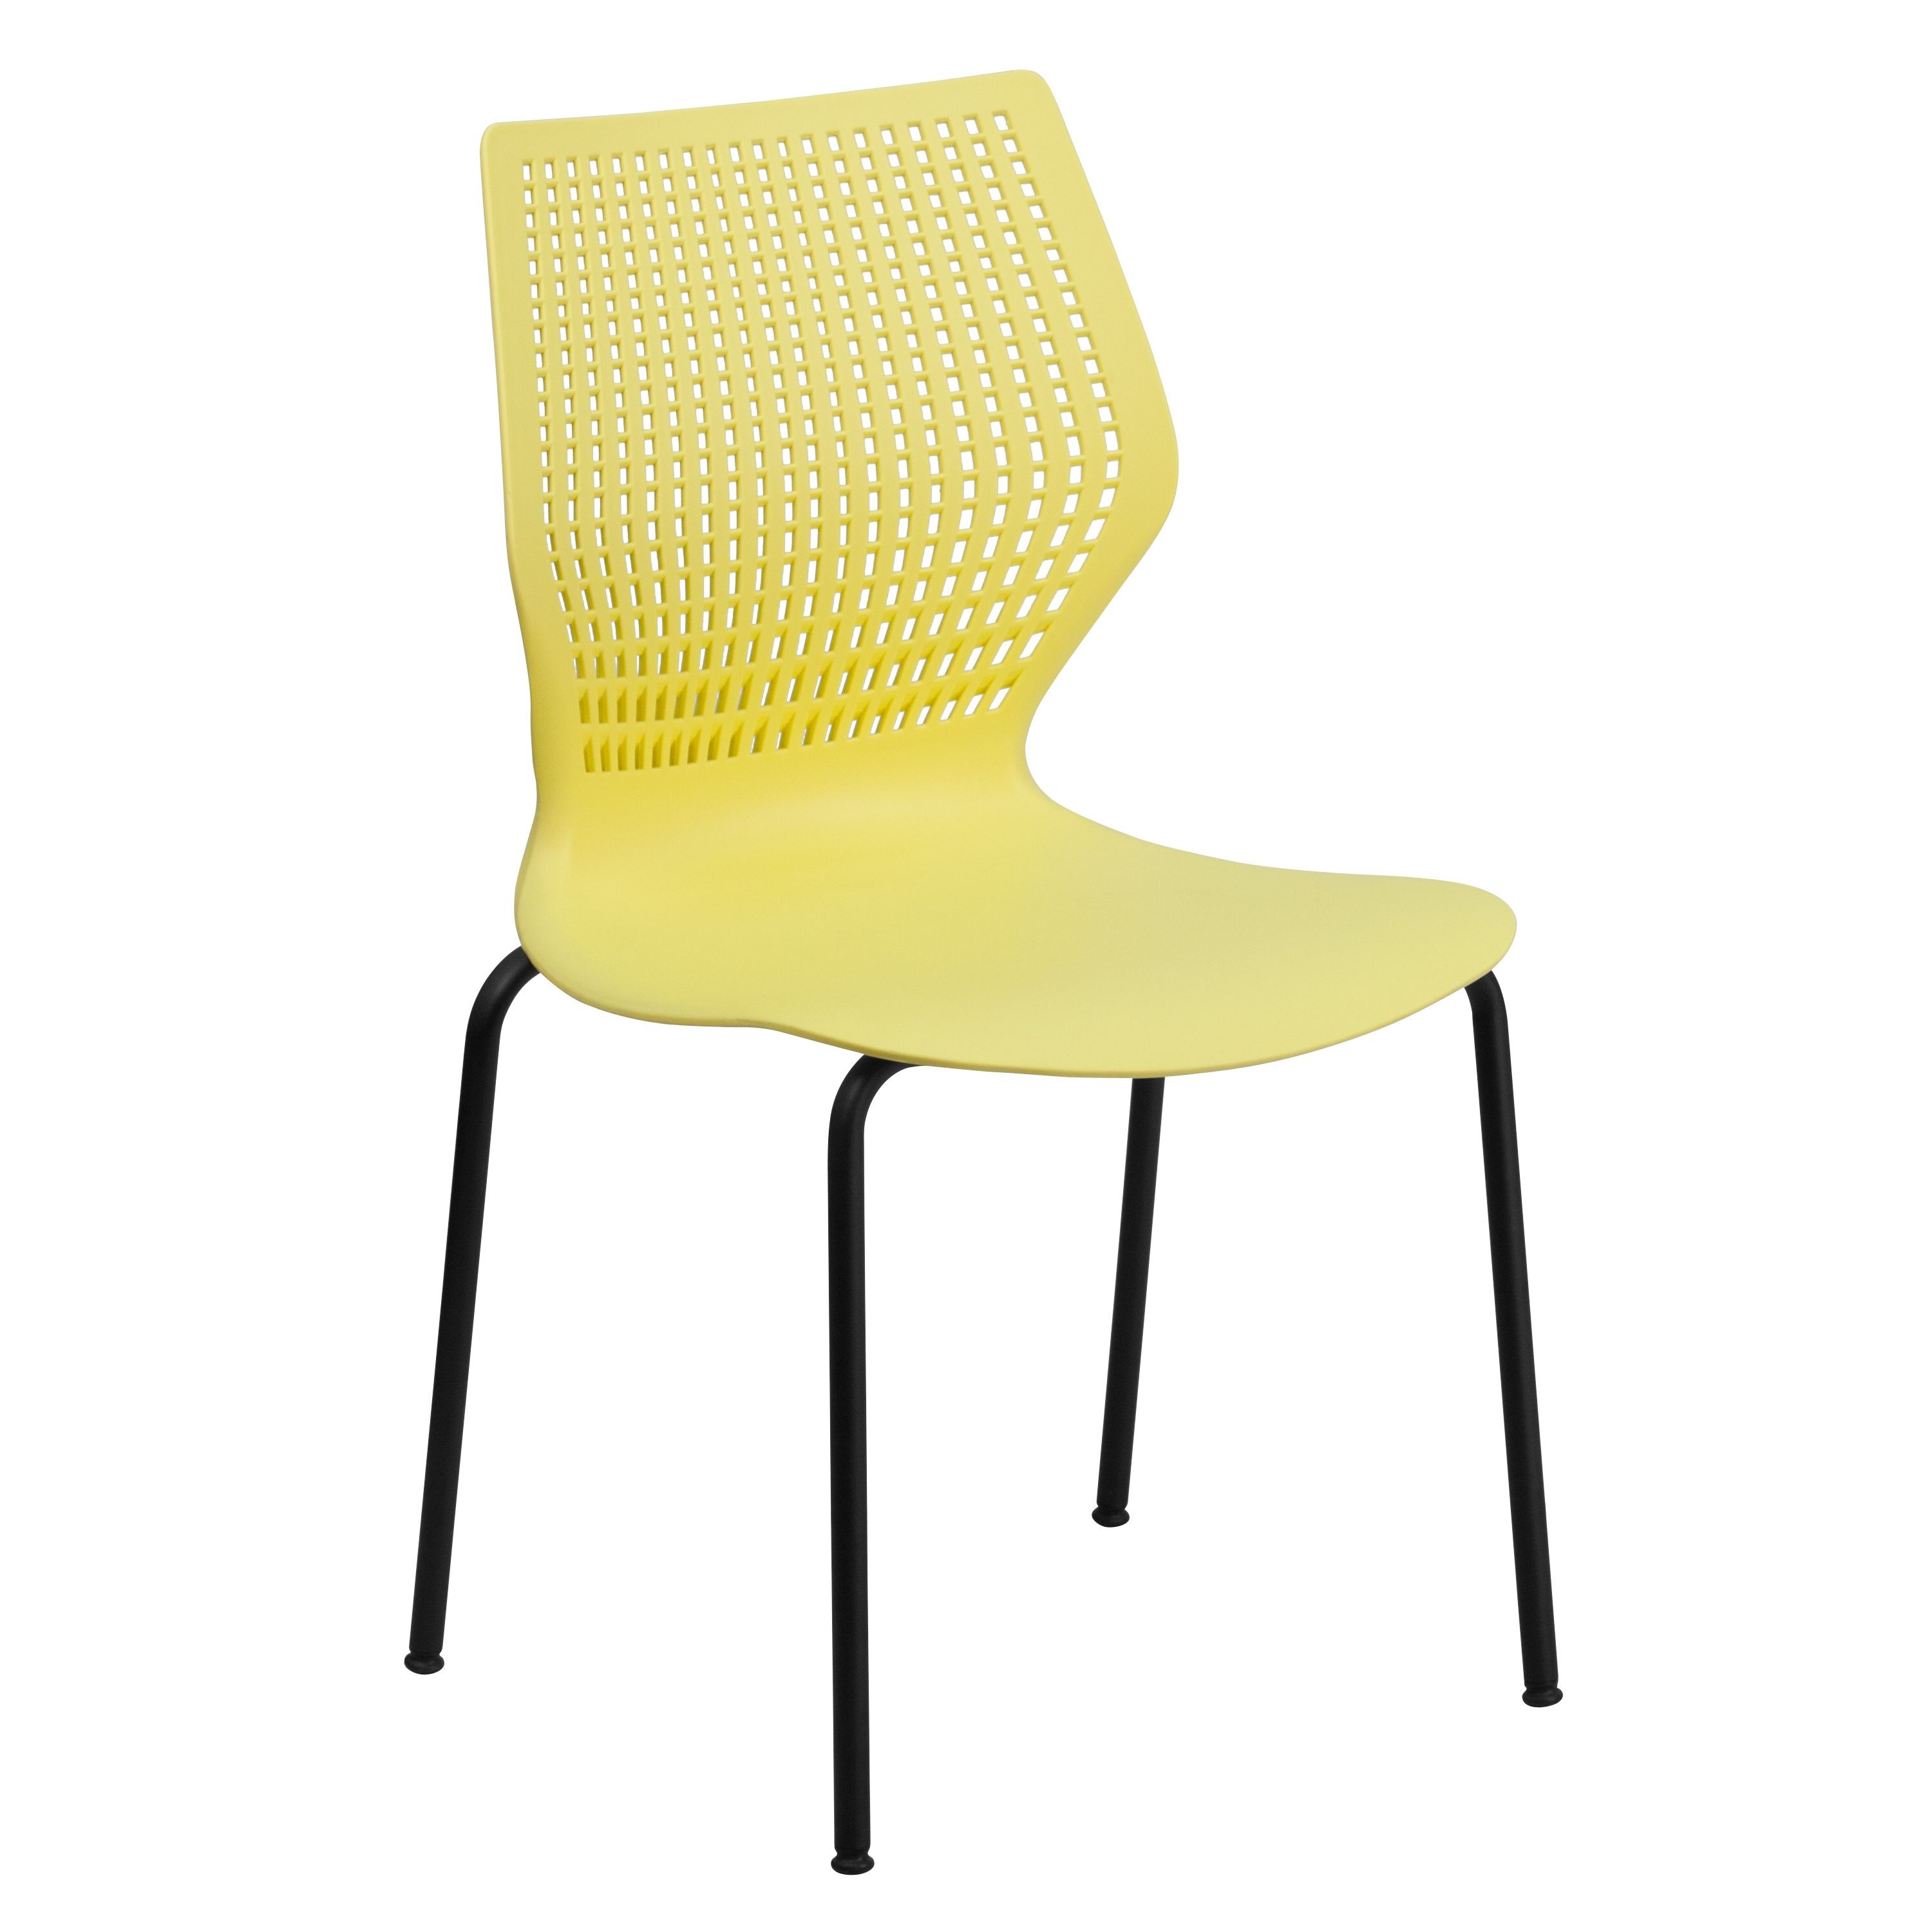 HERCULES Series 770 lb. Capacity Designer Yellow Stack Chair with Black Frame